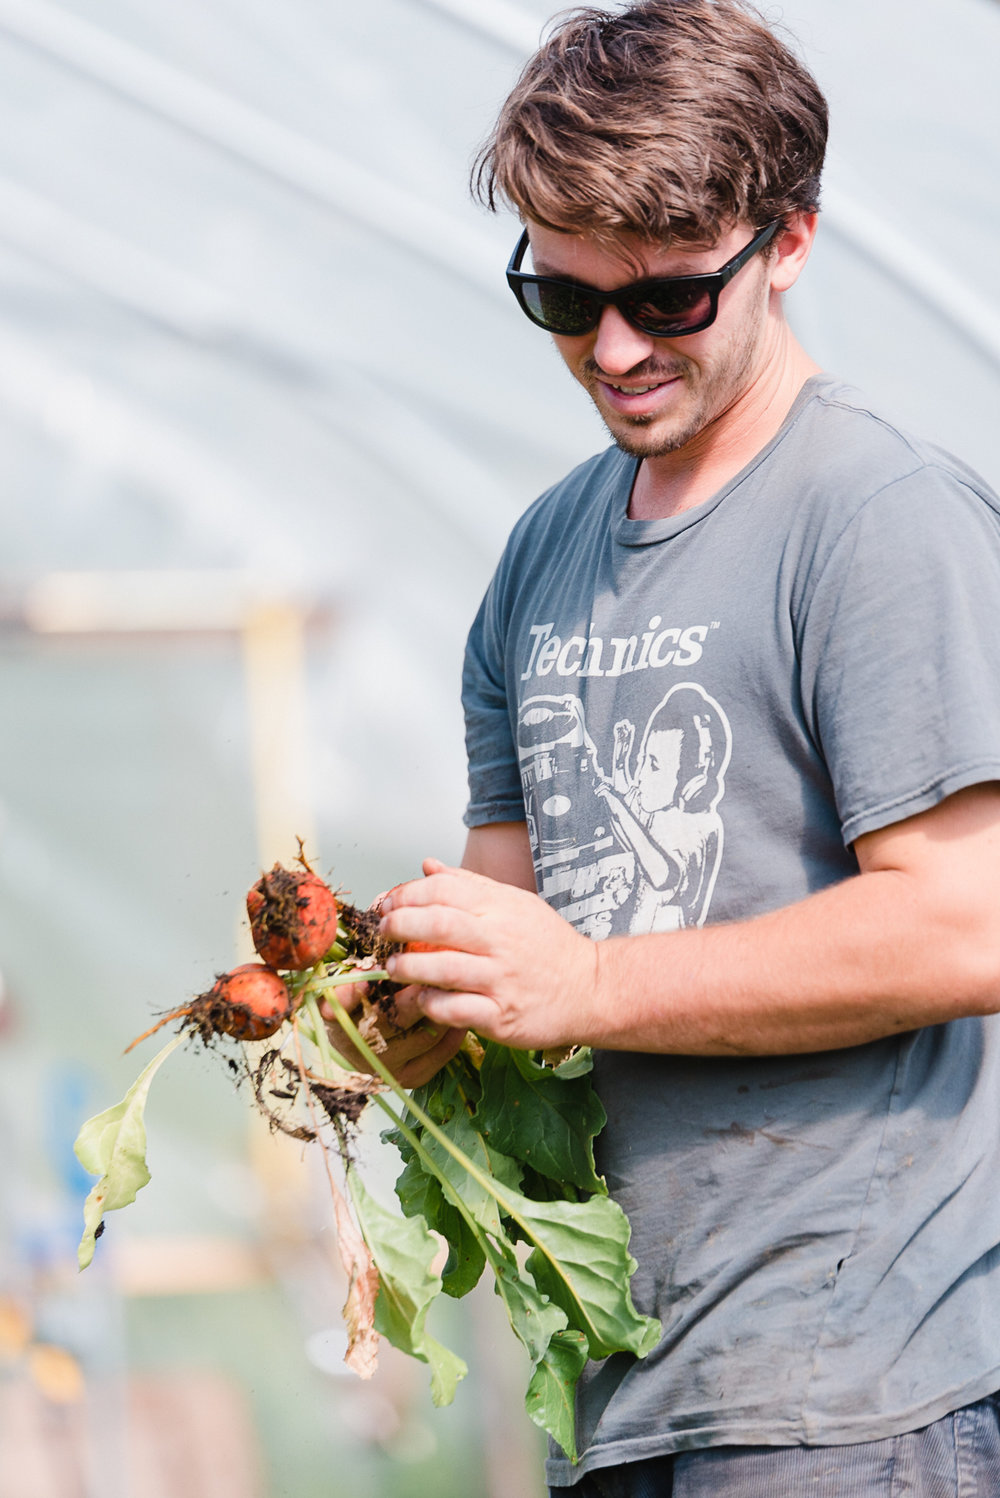 Farmstead Catering -- Chef Taylor LaFleur brings out the incredible flavors of the local organic food grown on Echo Farm.